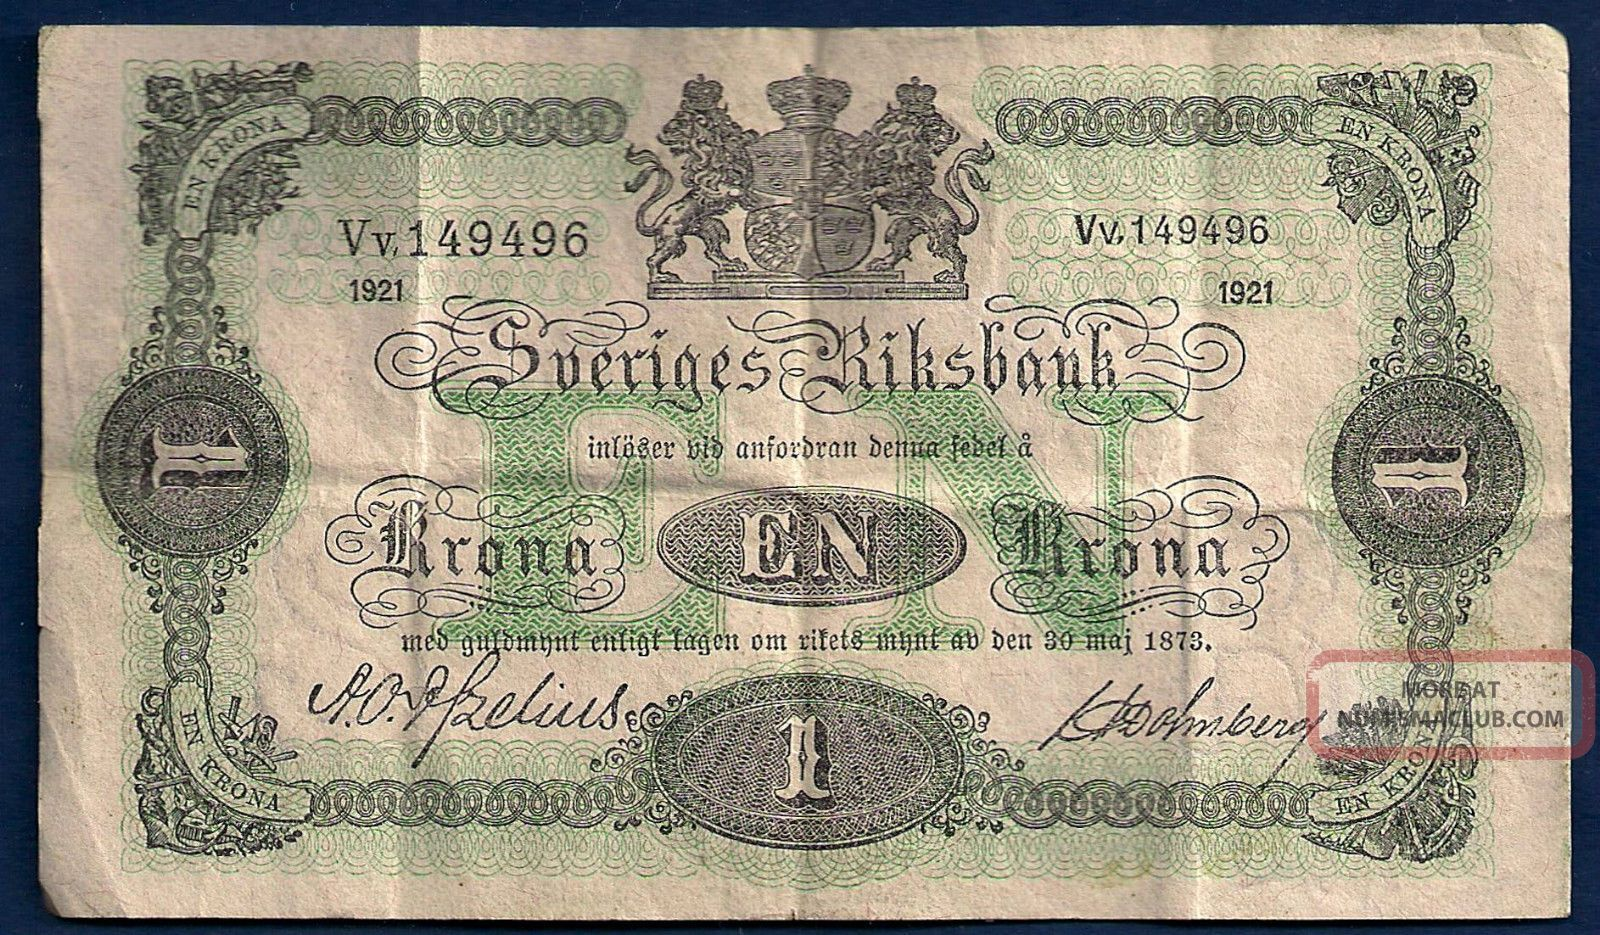 Sweden 1 Krona 1921 P - 32h Vintage Sveriges Riksbank Swedish Note Europe photo